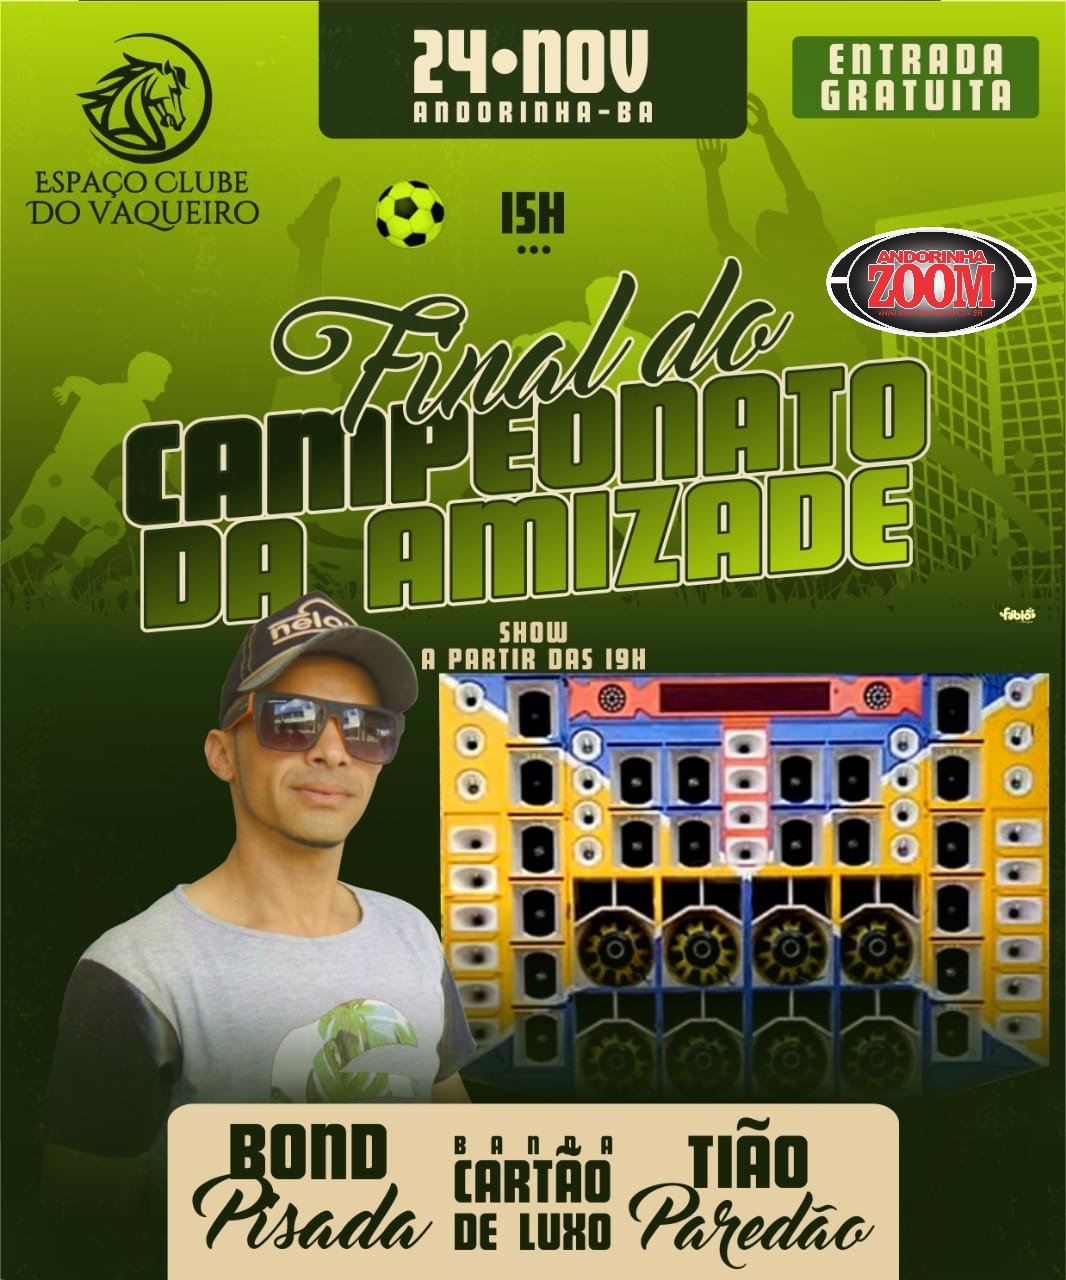 FINAL DO CAMPEONATO DA AMIZADE